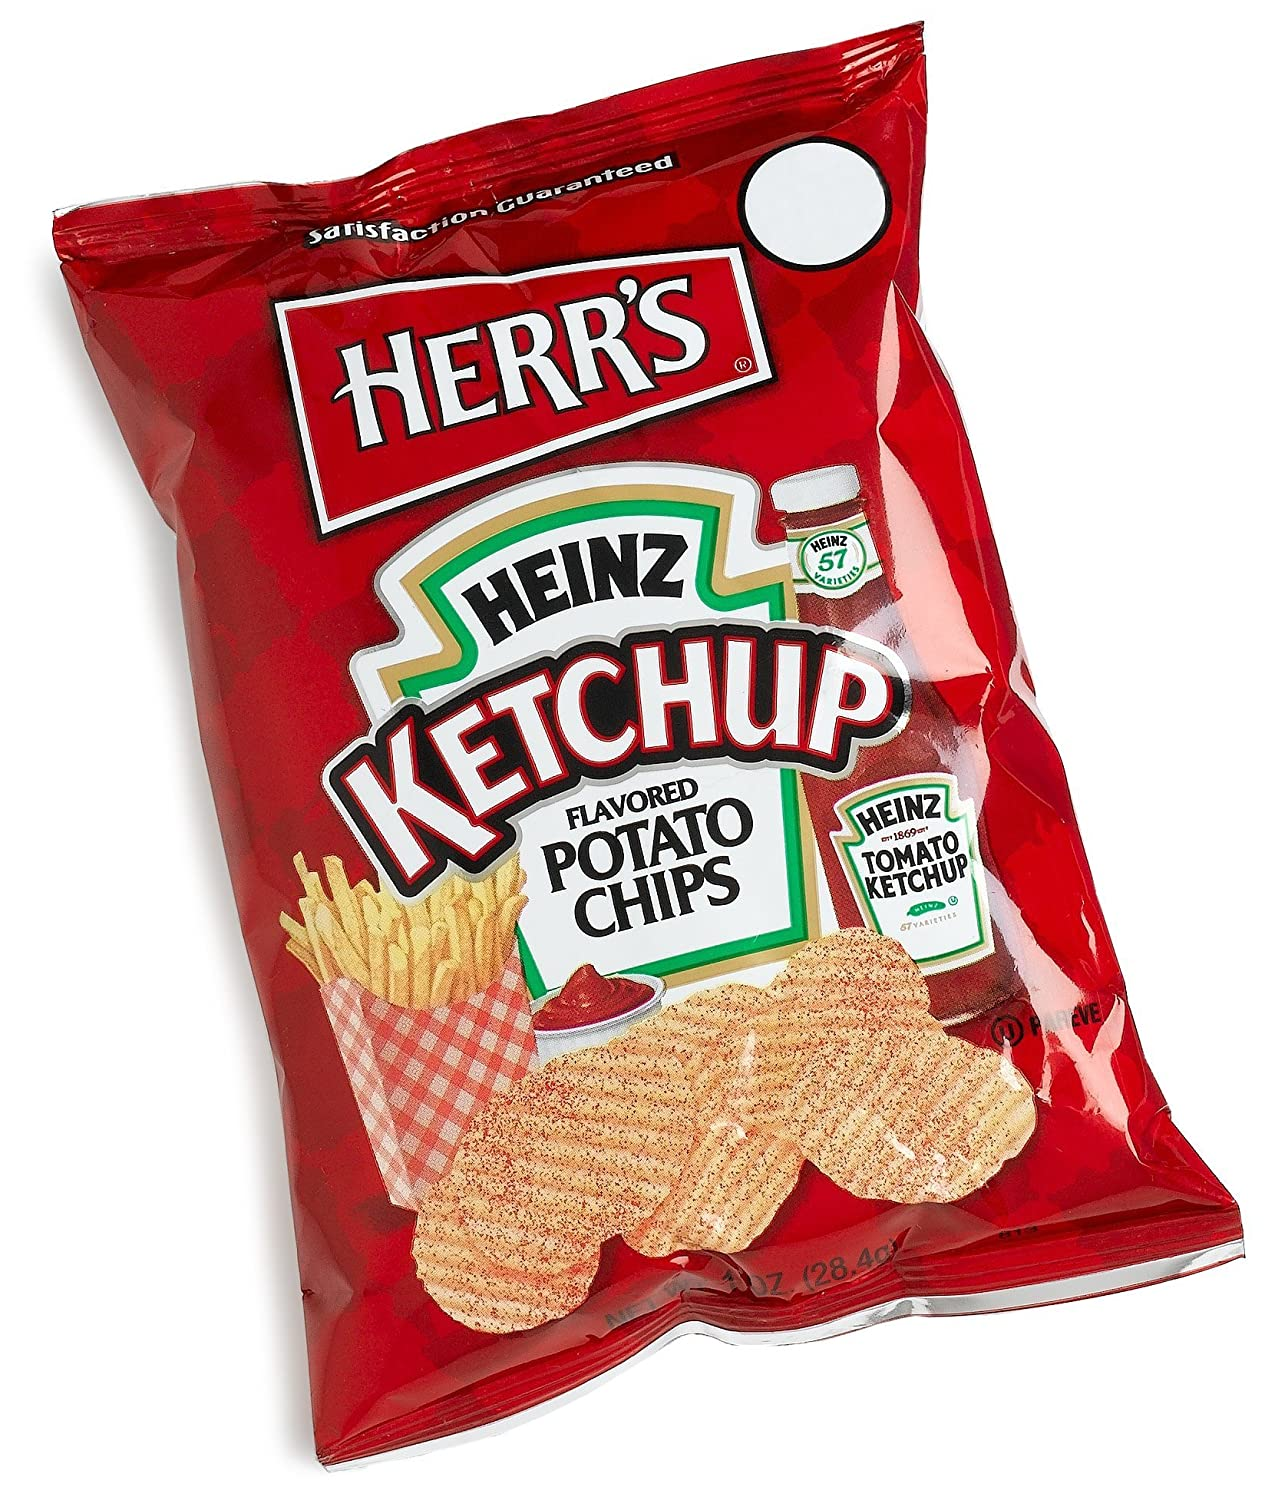 Ketchup Chips versus All Dressed Chips - Page 3 - HFBoards